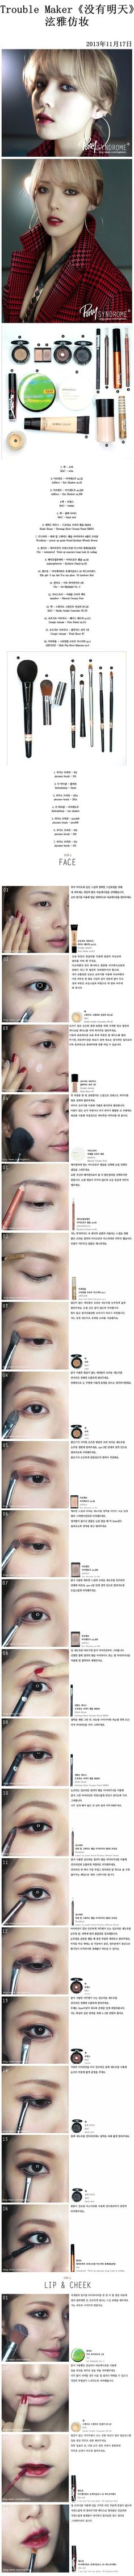 Hyuna trouble maker make up inspire Asian Make Up, Korean Make Up, Eye Make Up, Pony Makeup, Cute Makeup, Makeup Looks, Makeup Inspo, Makeup Inspiration, Beauty Makeup